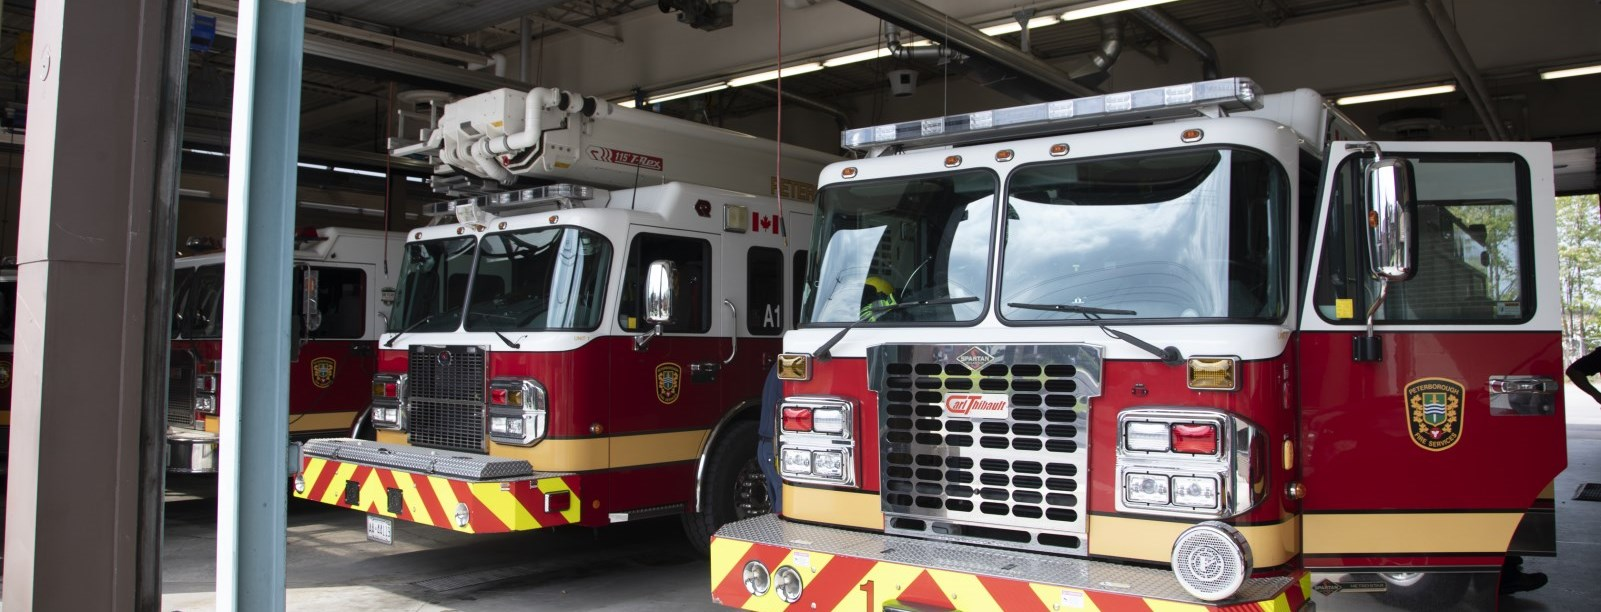 Fire trucks in the fire hall bay